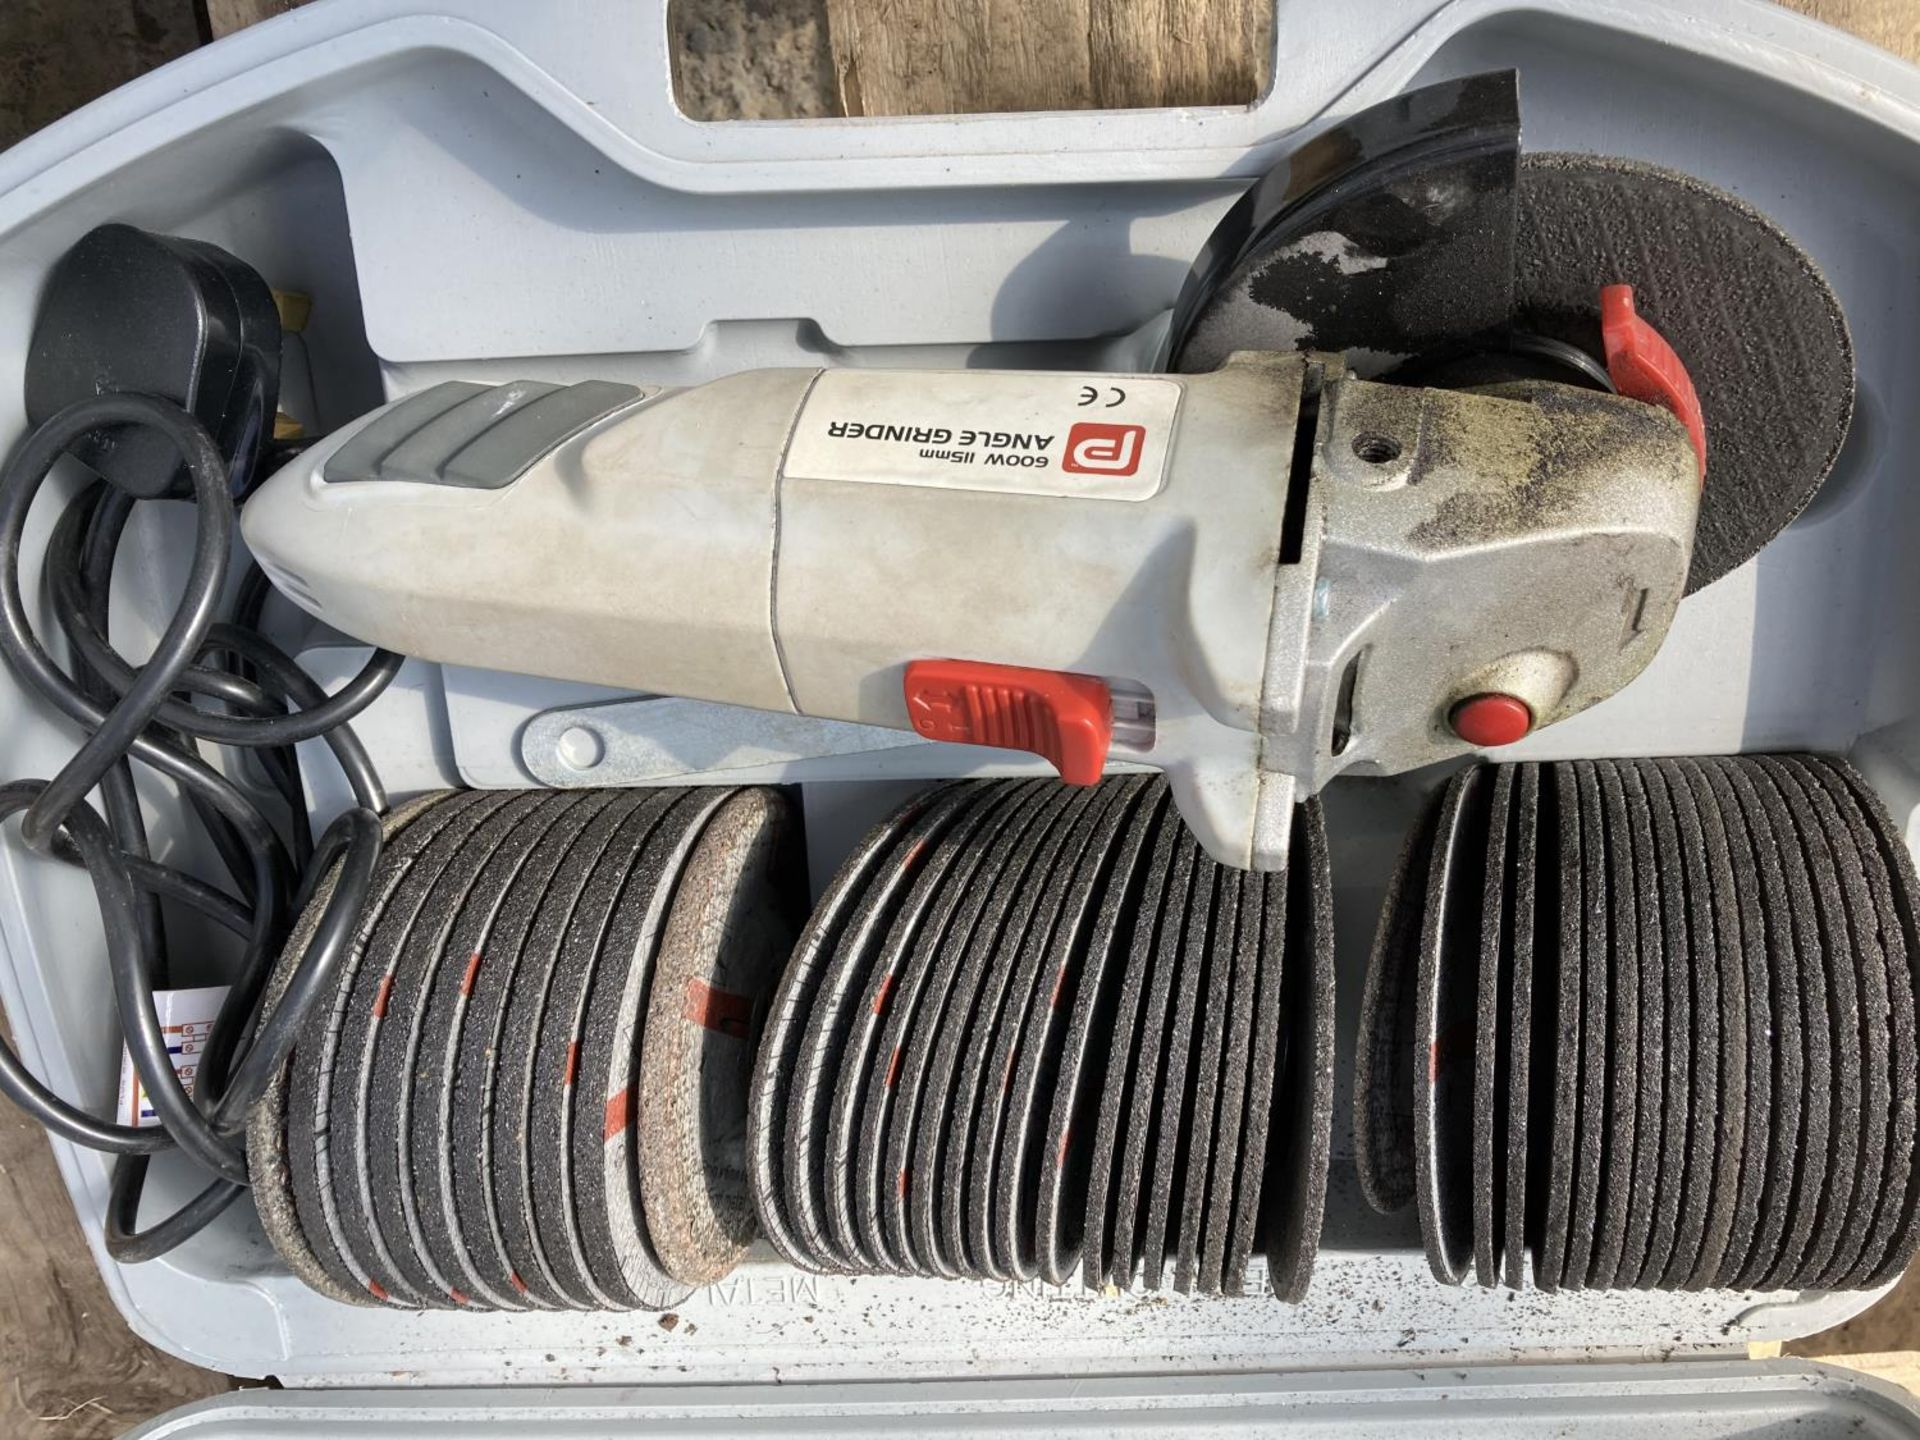 THREE POWER TOOLS TO INCLUDE A KATSU ROUTER PLUNGE TILT, POWER 600W ANGLE GRINDER WITH DISCS AND A - Image 2 of 6